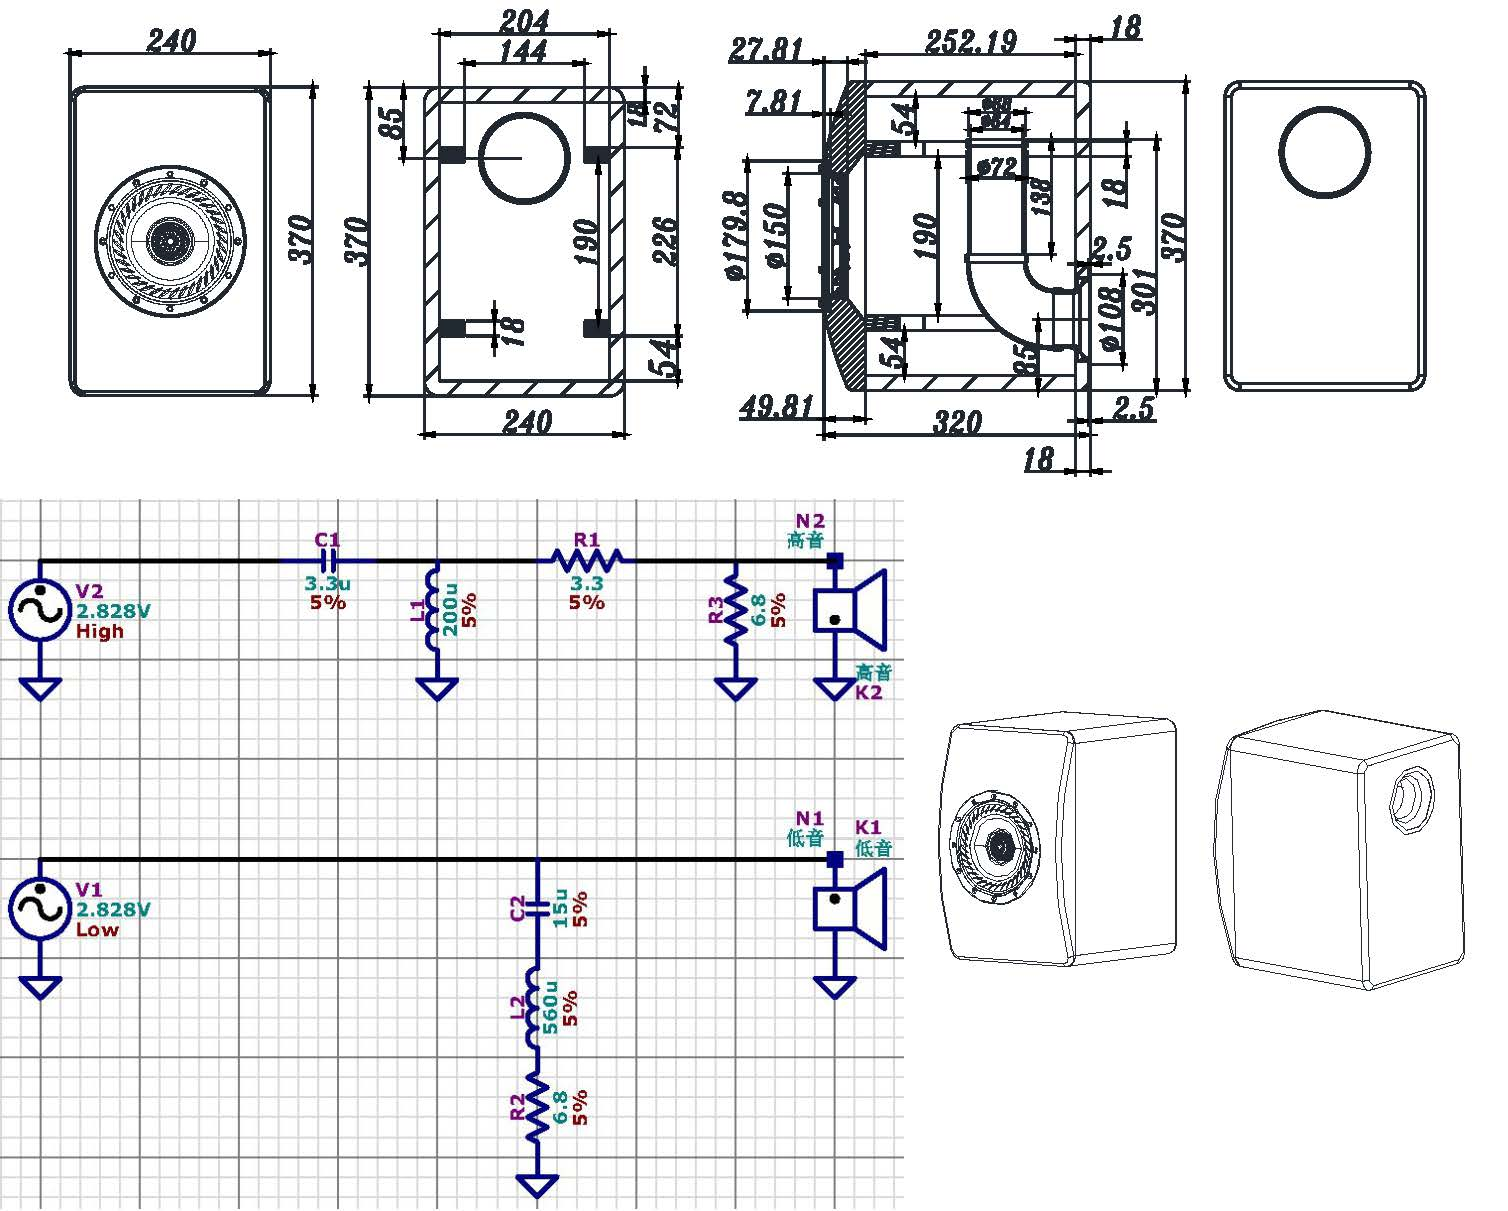 Sug2 25 65 2 Way Coaxial Bookshelf Enclosure Suggestion Tb Speaker Wiring Diagram Description Rated Power Input 45 W Frequency Response 5040k Hz Resonance 50